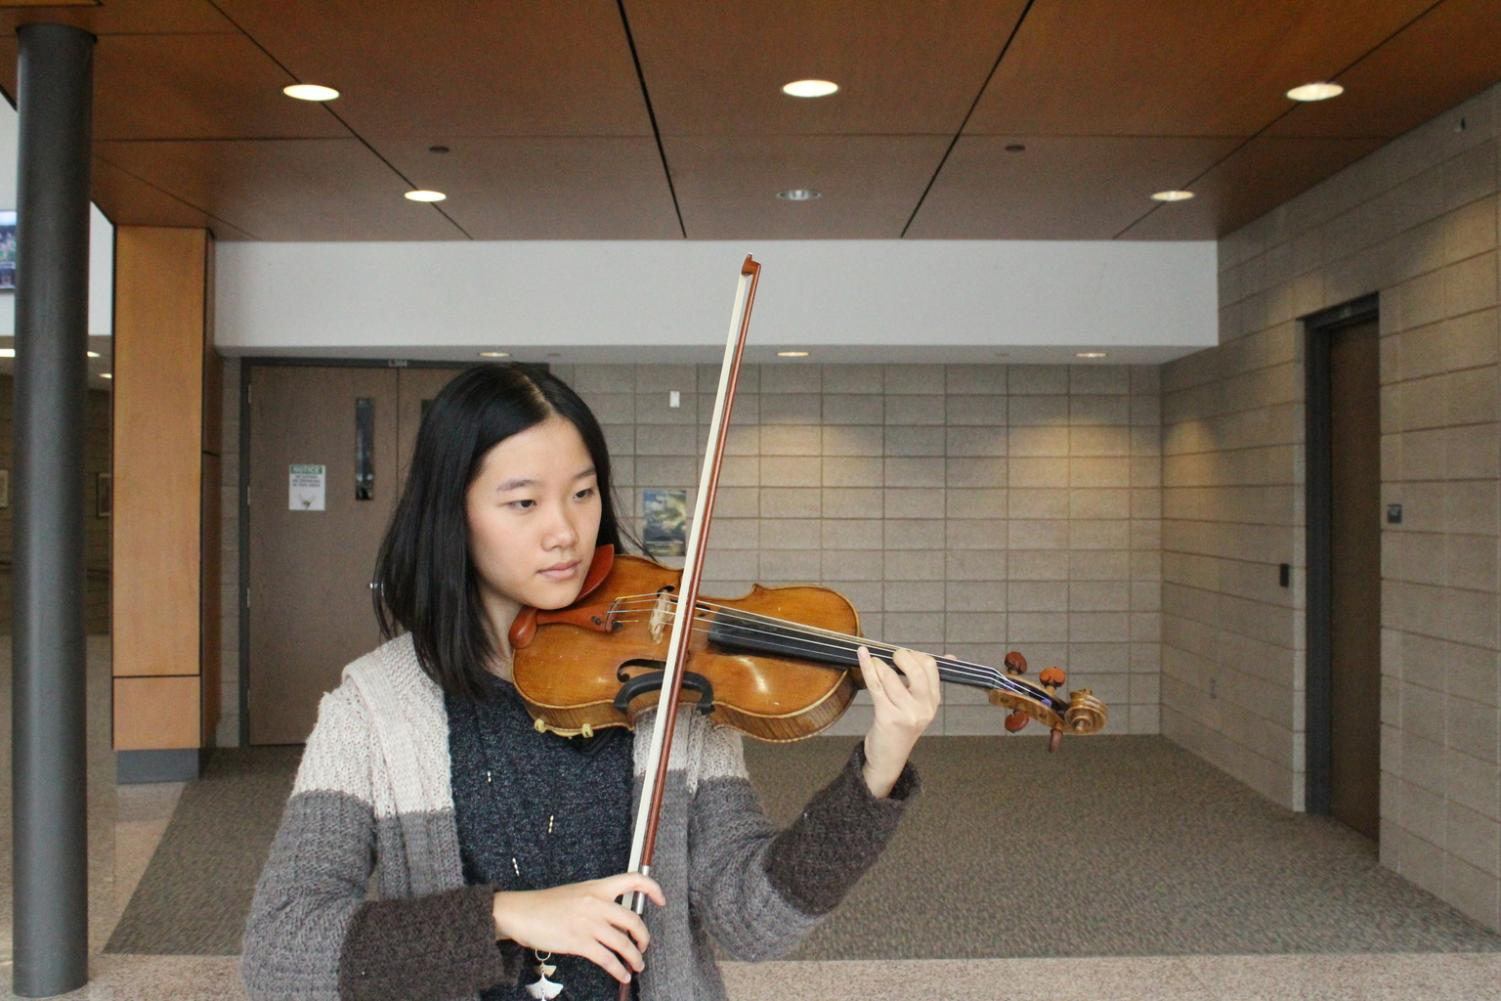 Life-long musician: Zhao has been playing the violin since she was five years old.